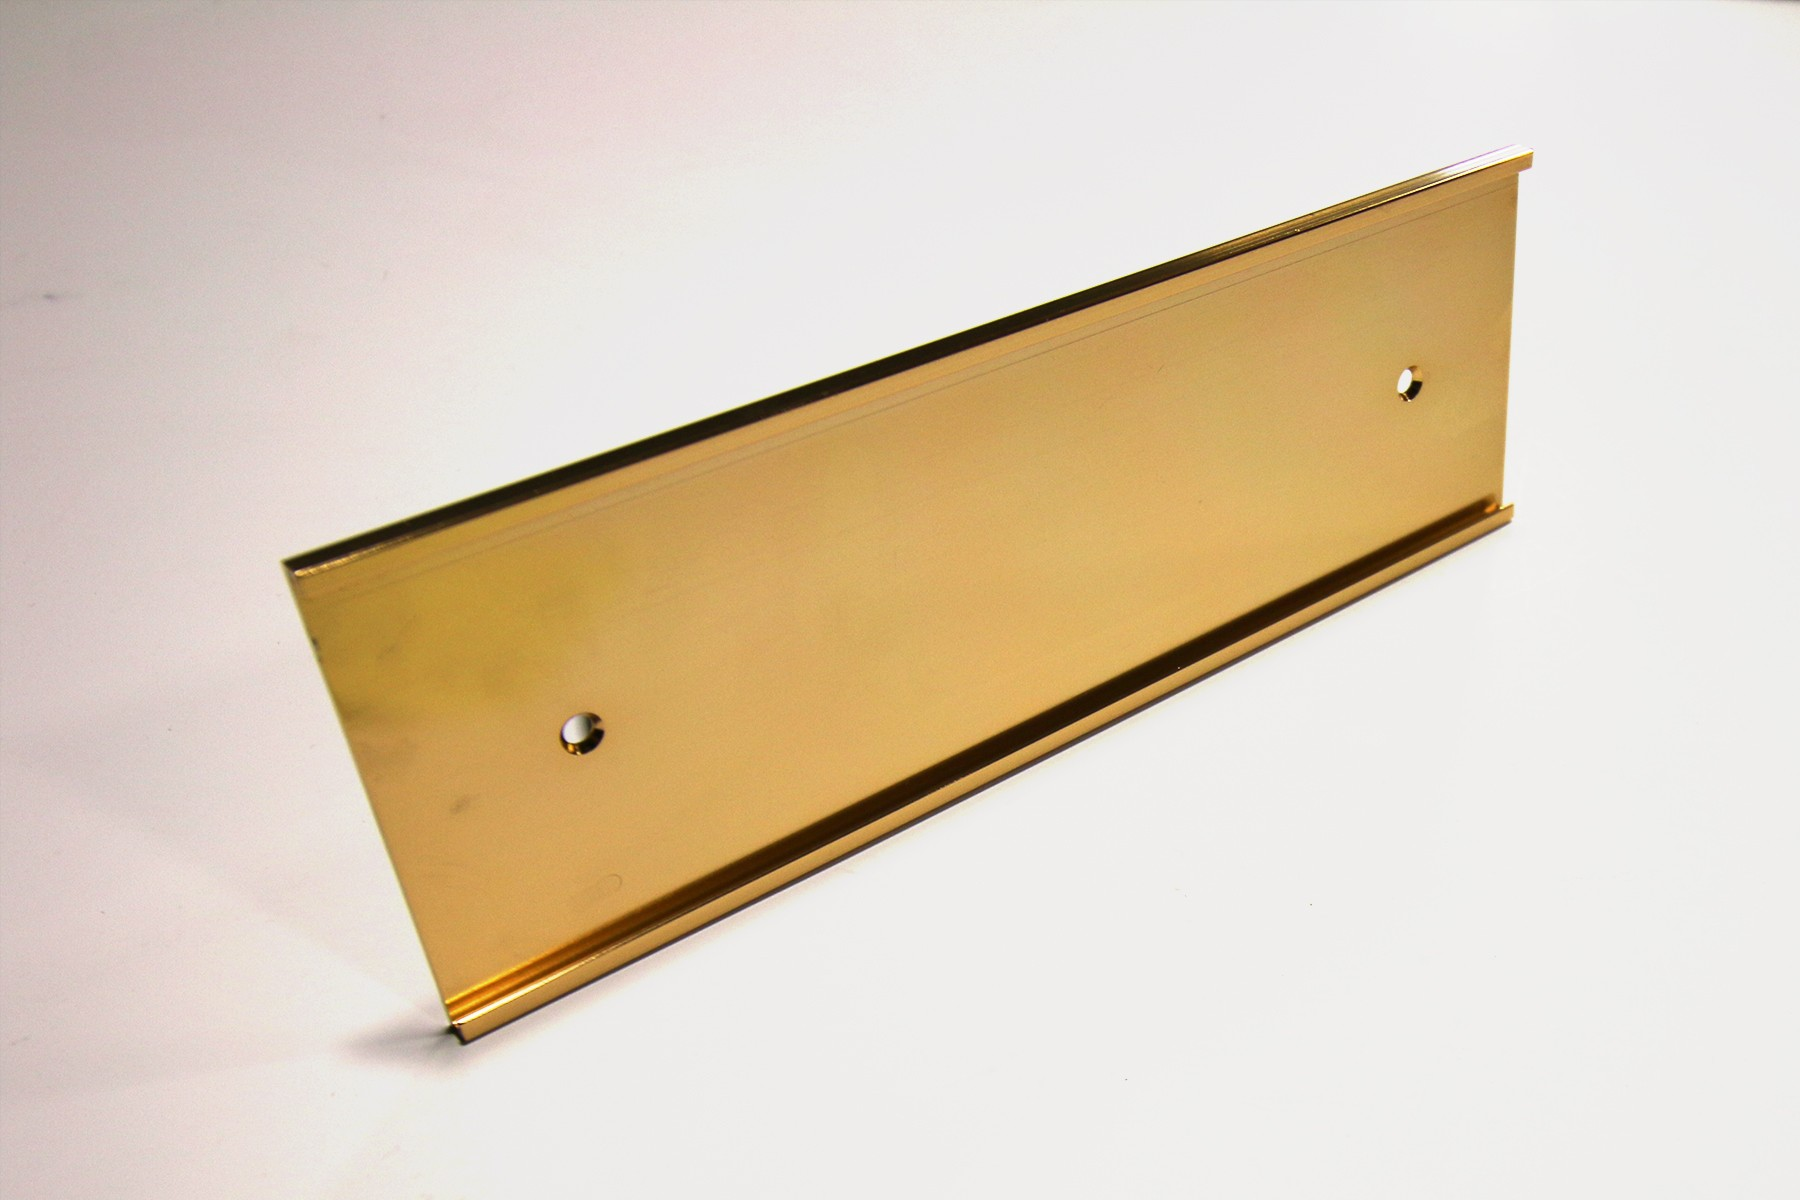 2-1/2 x 36 Wall Holder, Gold